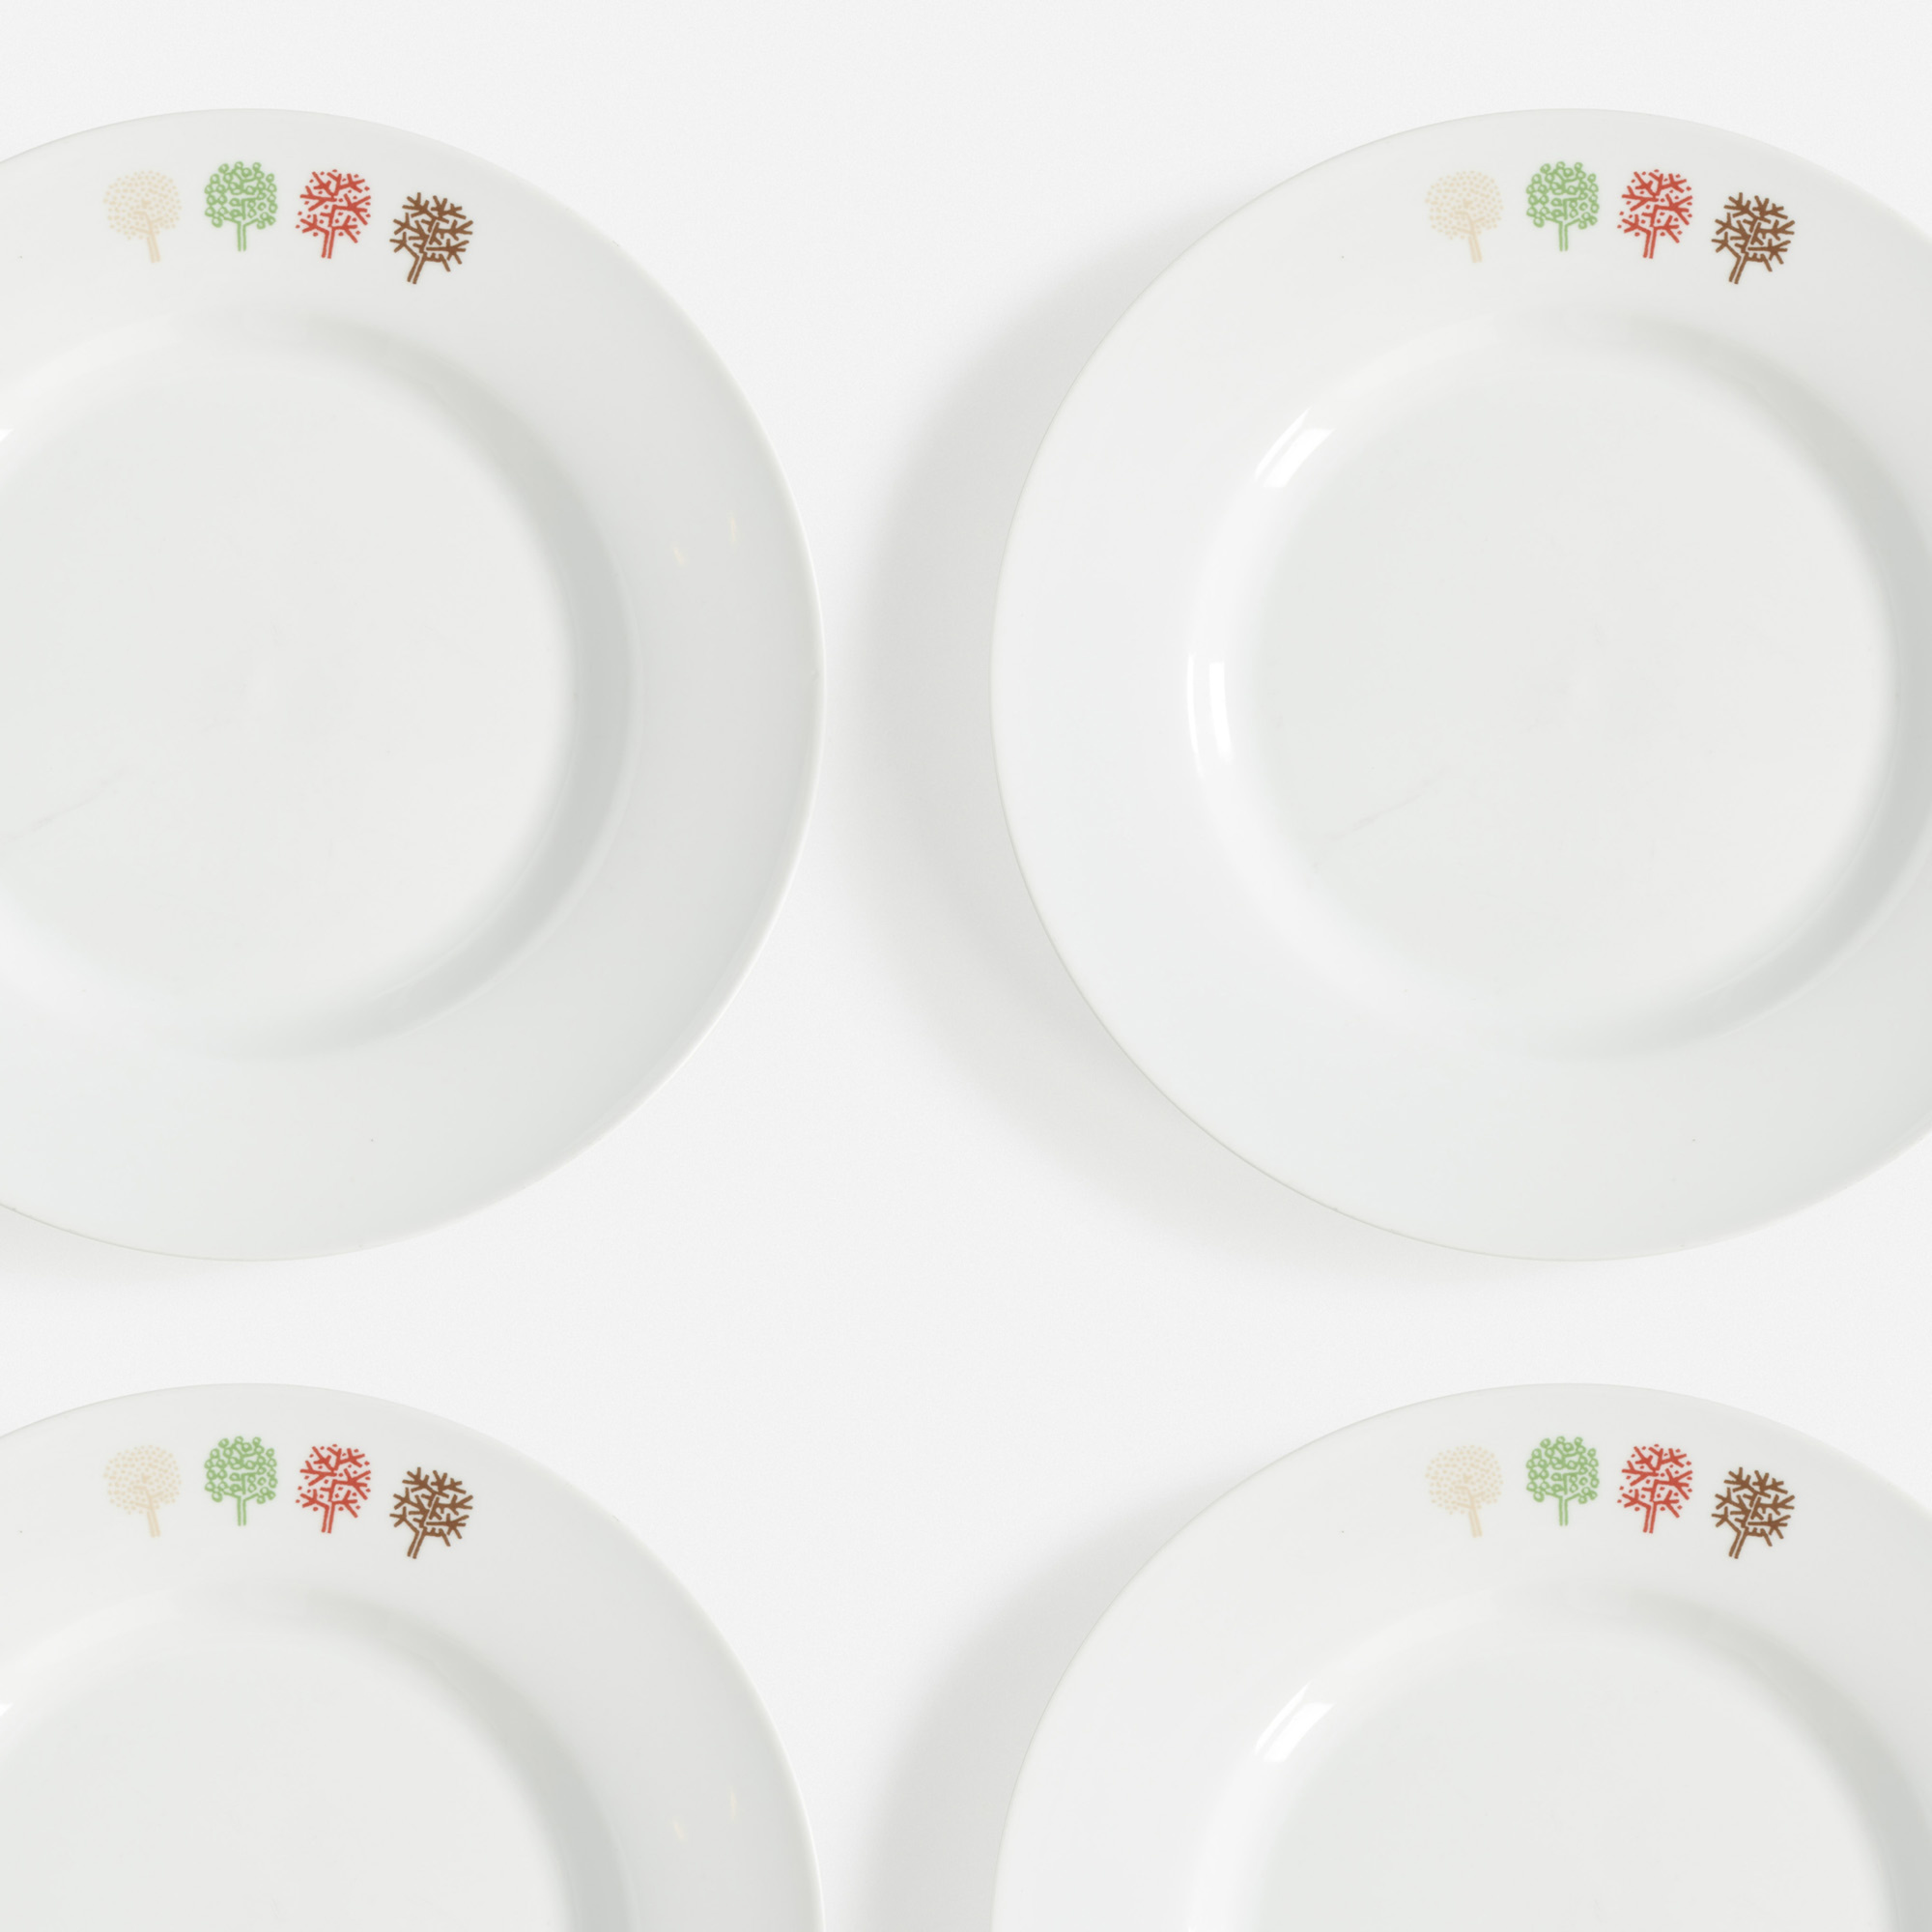 442:  / Four Seasons plates, set of twelve (1 of 1)